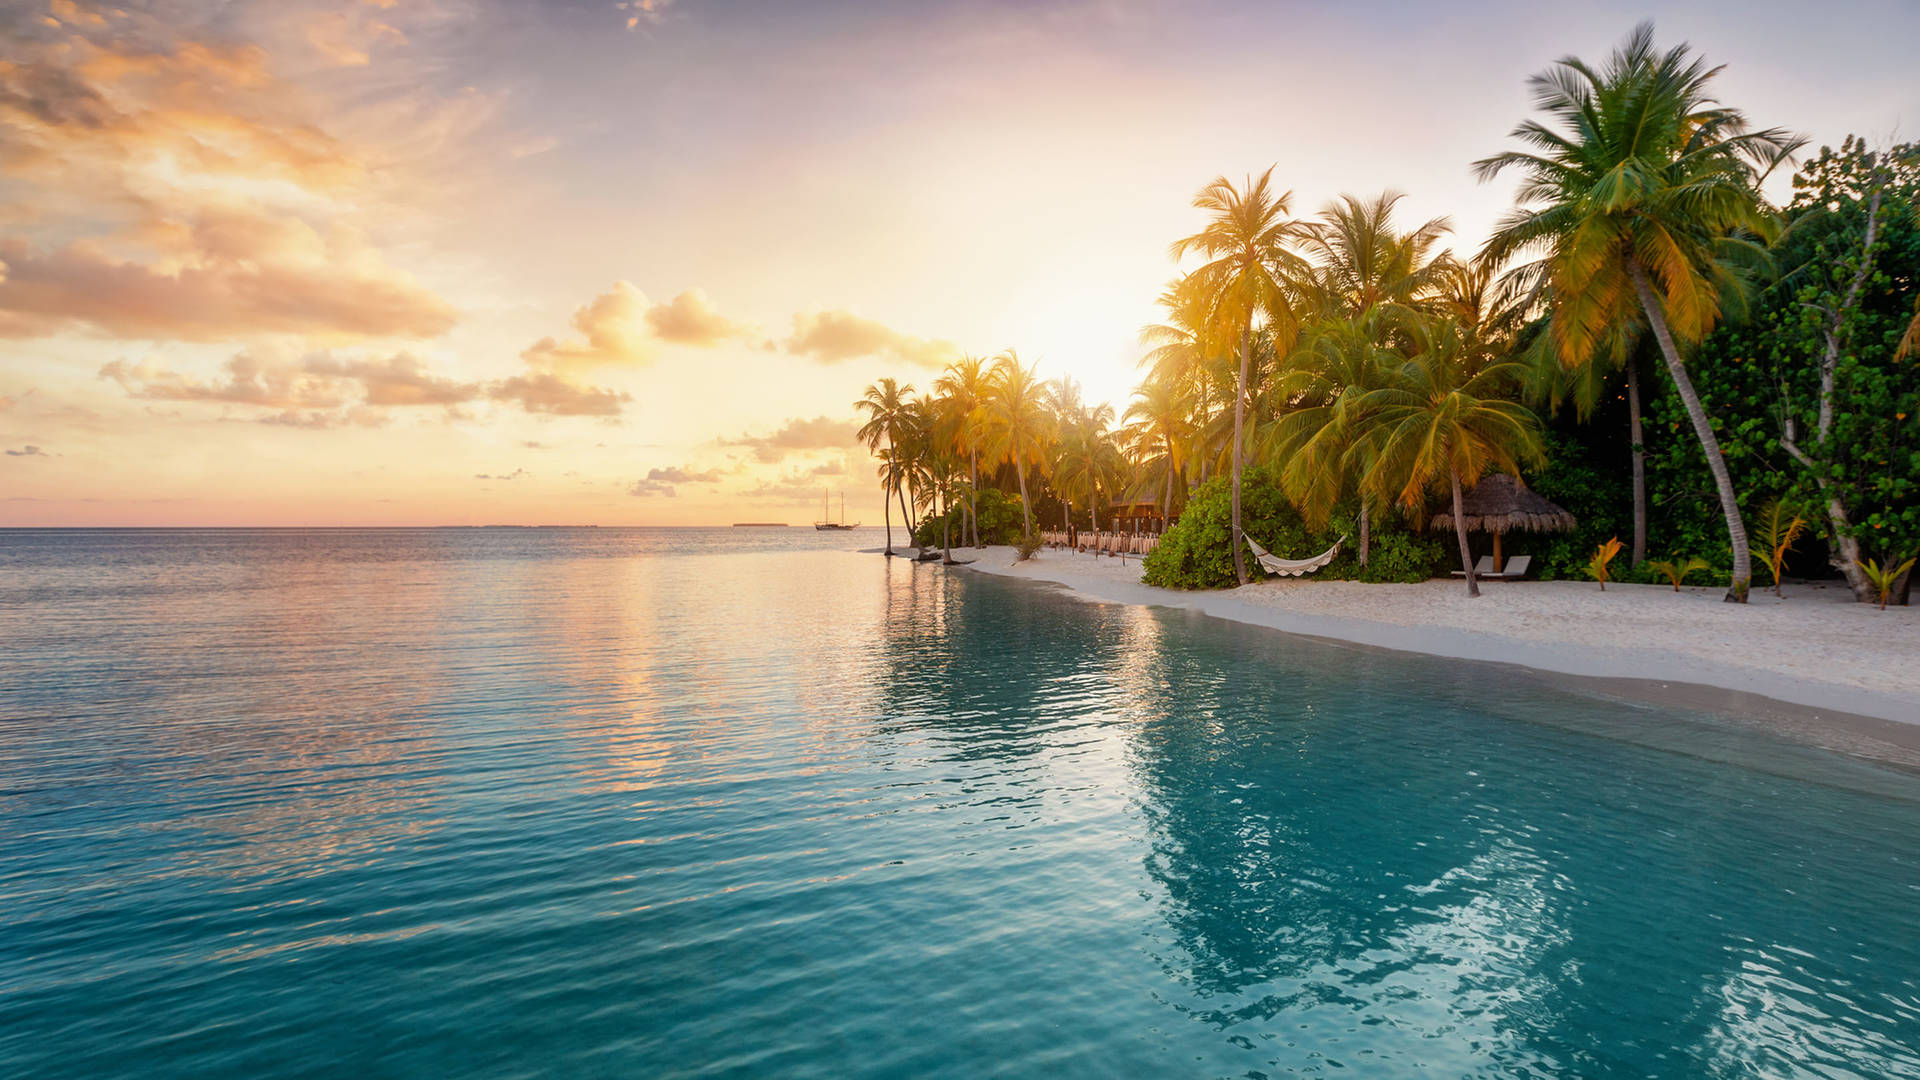 Dusk in the tropical Maldives